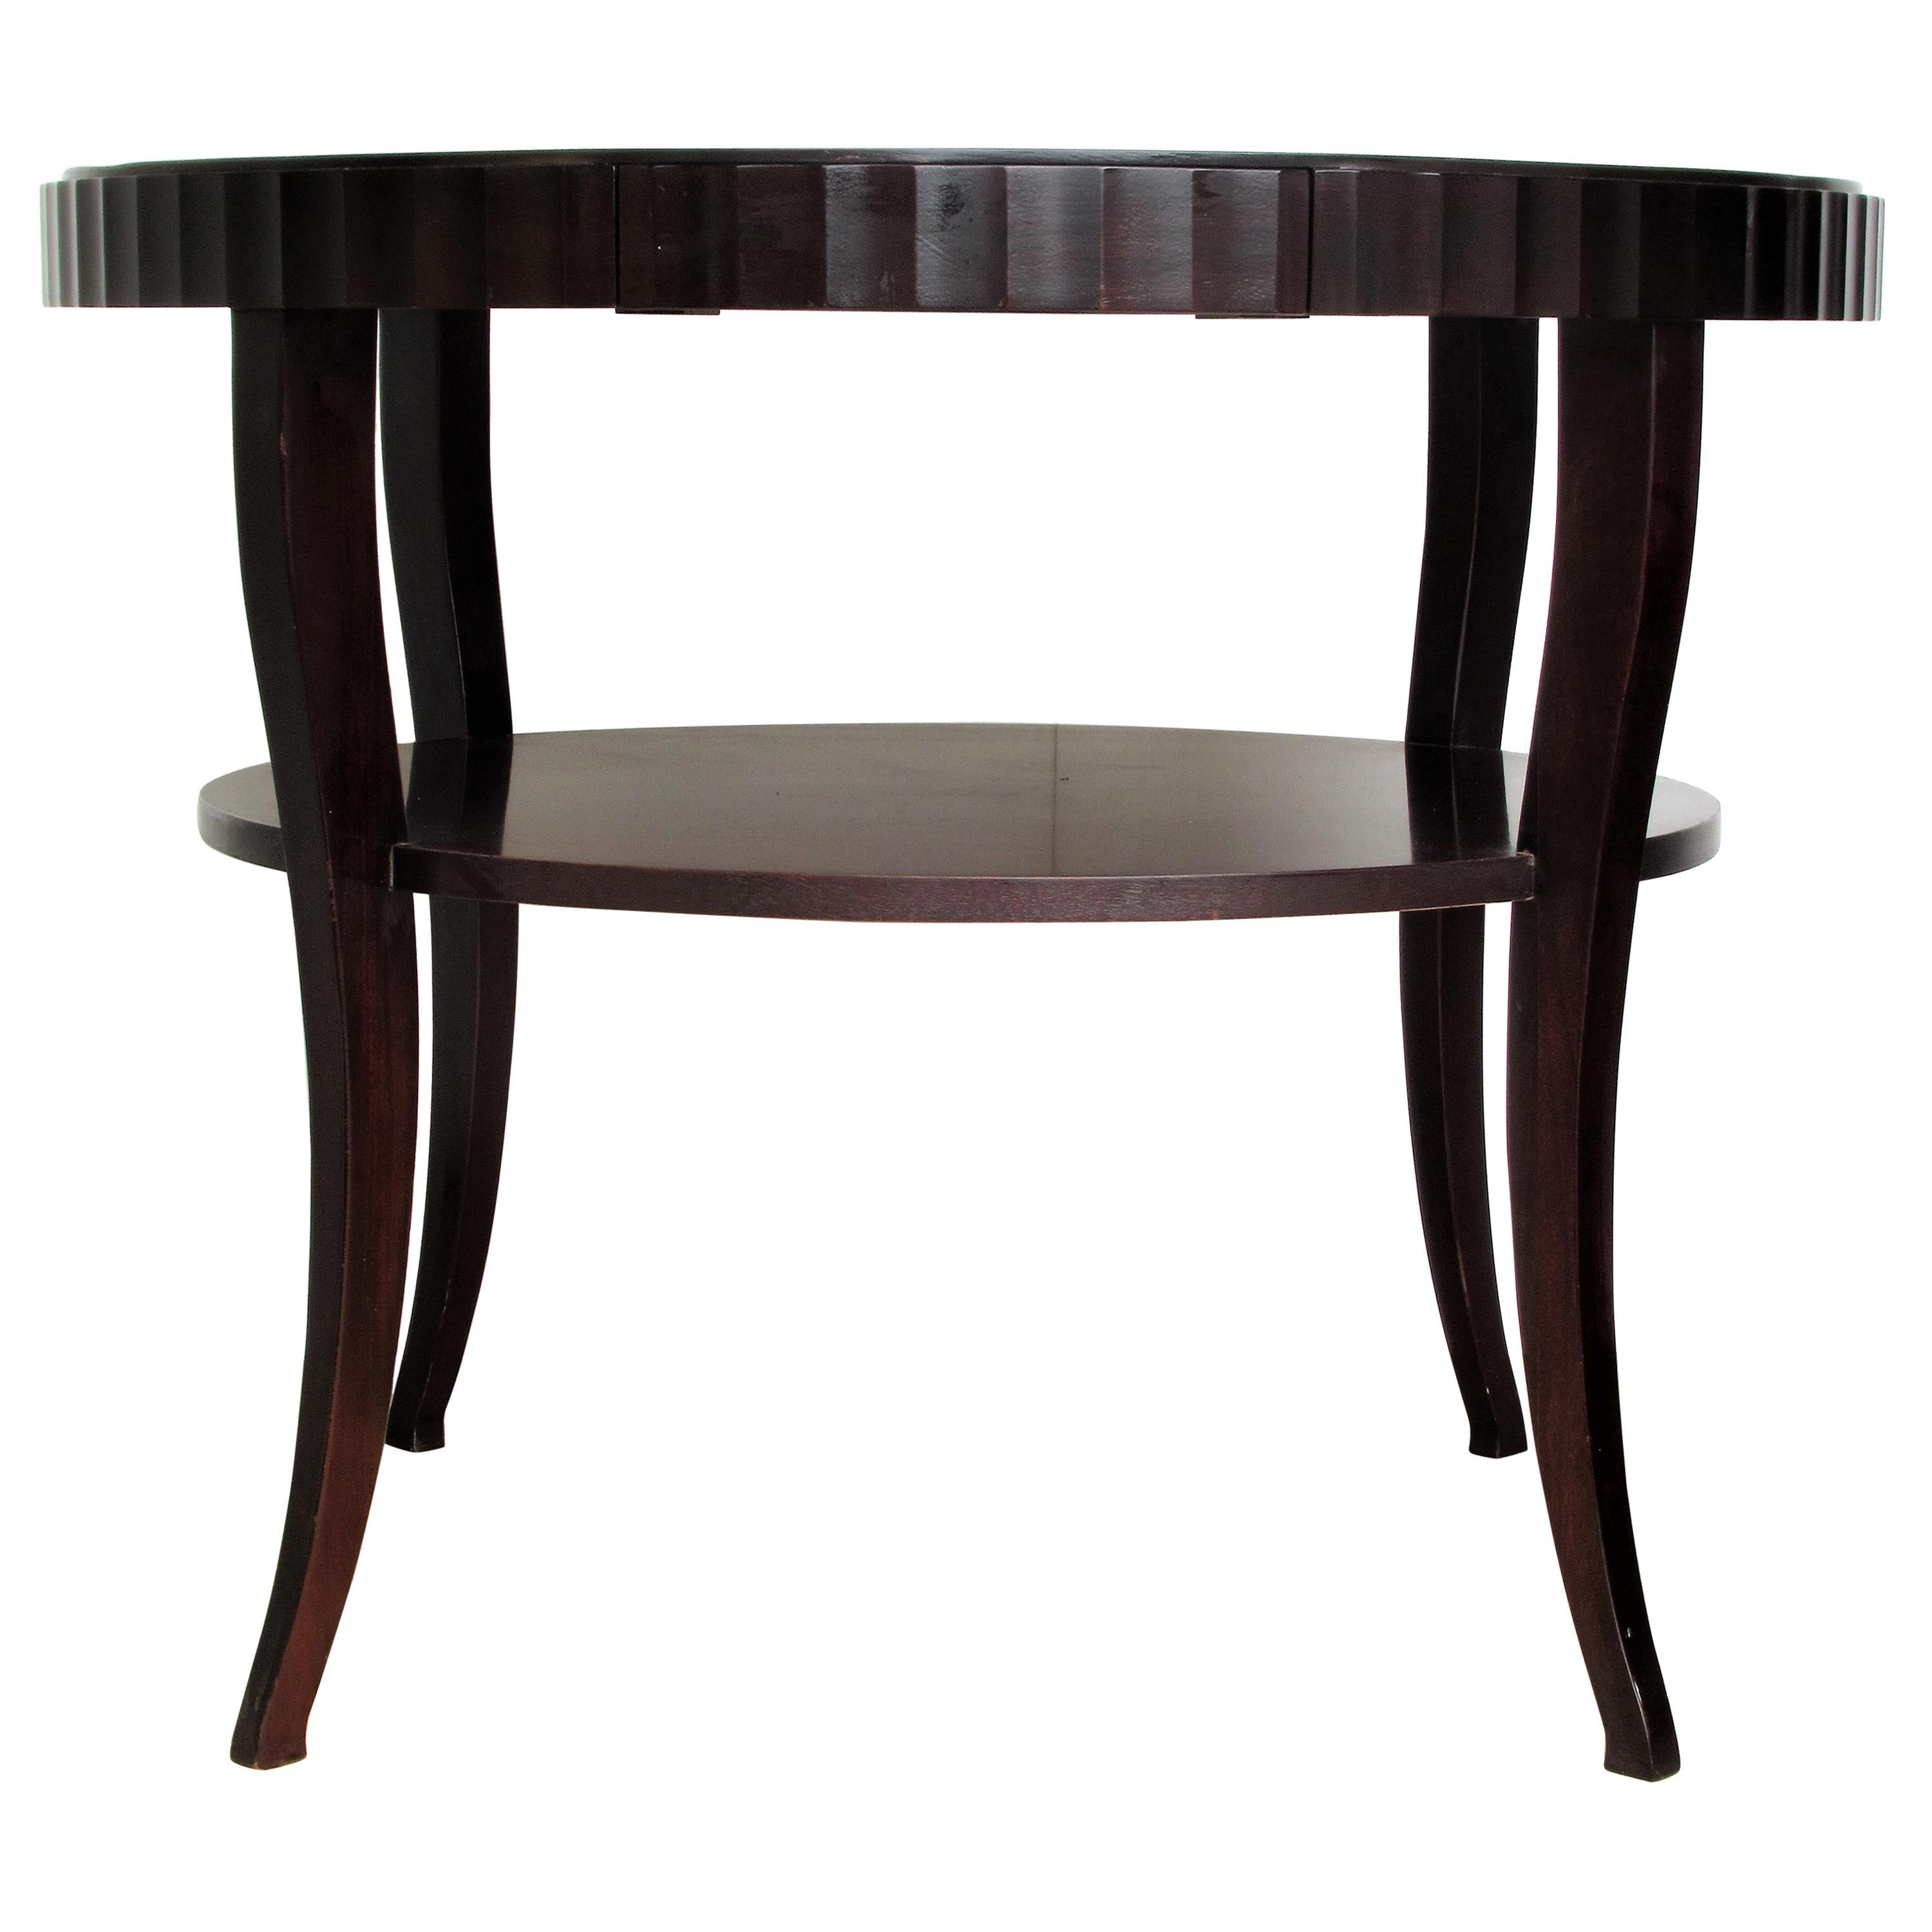 Barbara Barry Furniture Tables Storage Cabinets More 30 For At 1stdibs